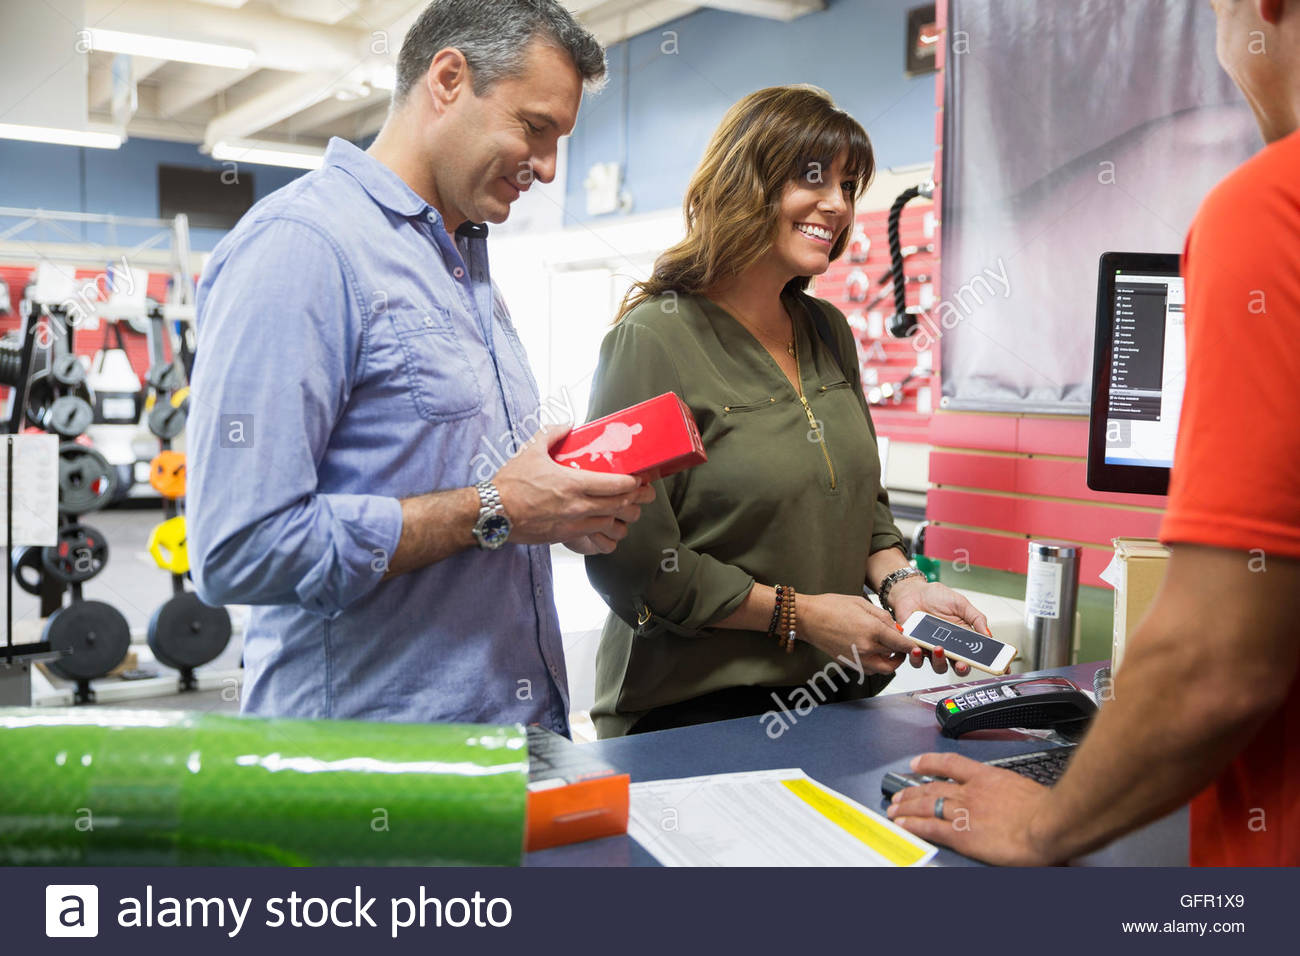 Couple paying using contactless payment in home gym equipment store - Stock Image